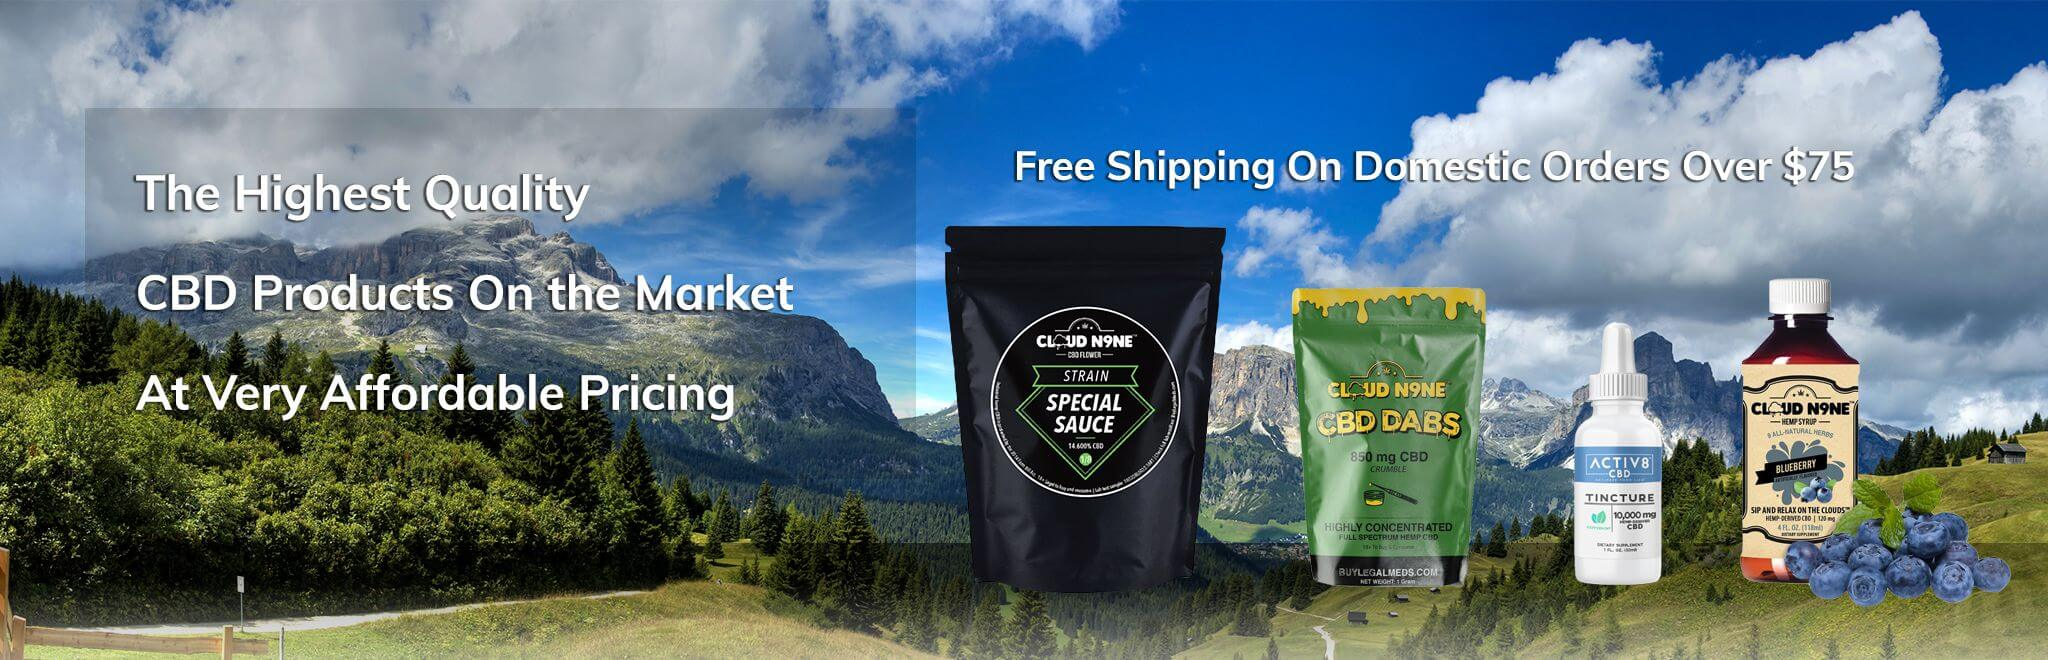 Affordable CBD products